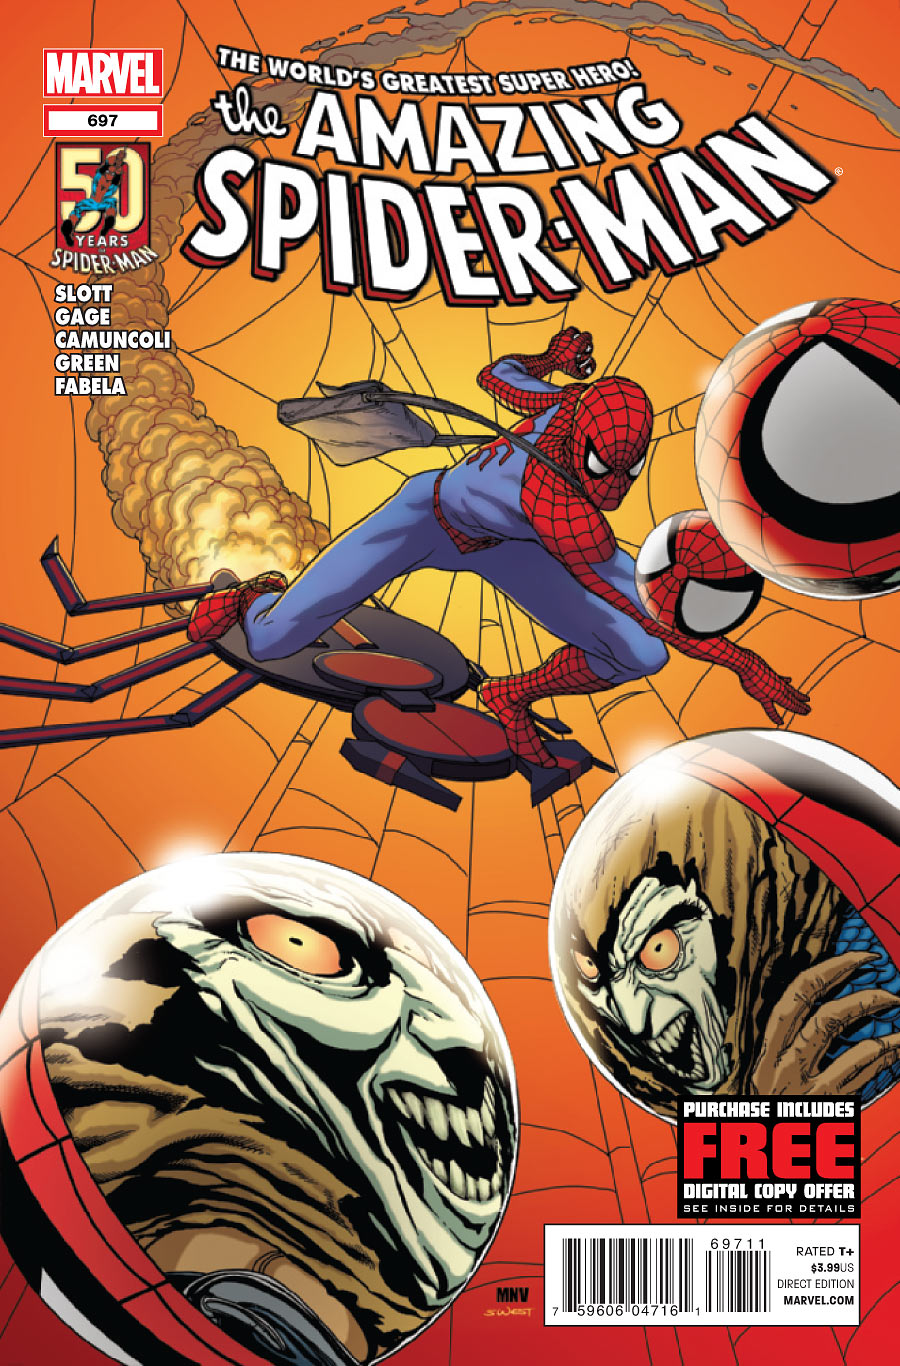 Amazing Spider Man 697 C Amazing Spider Man #697 Review